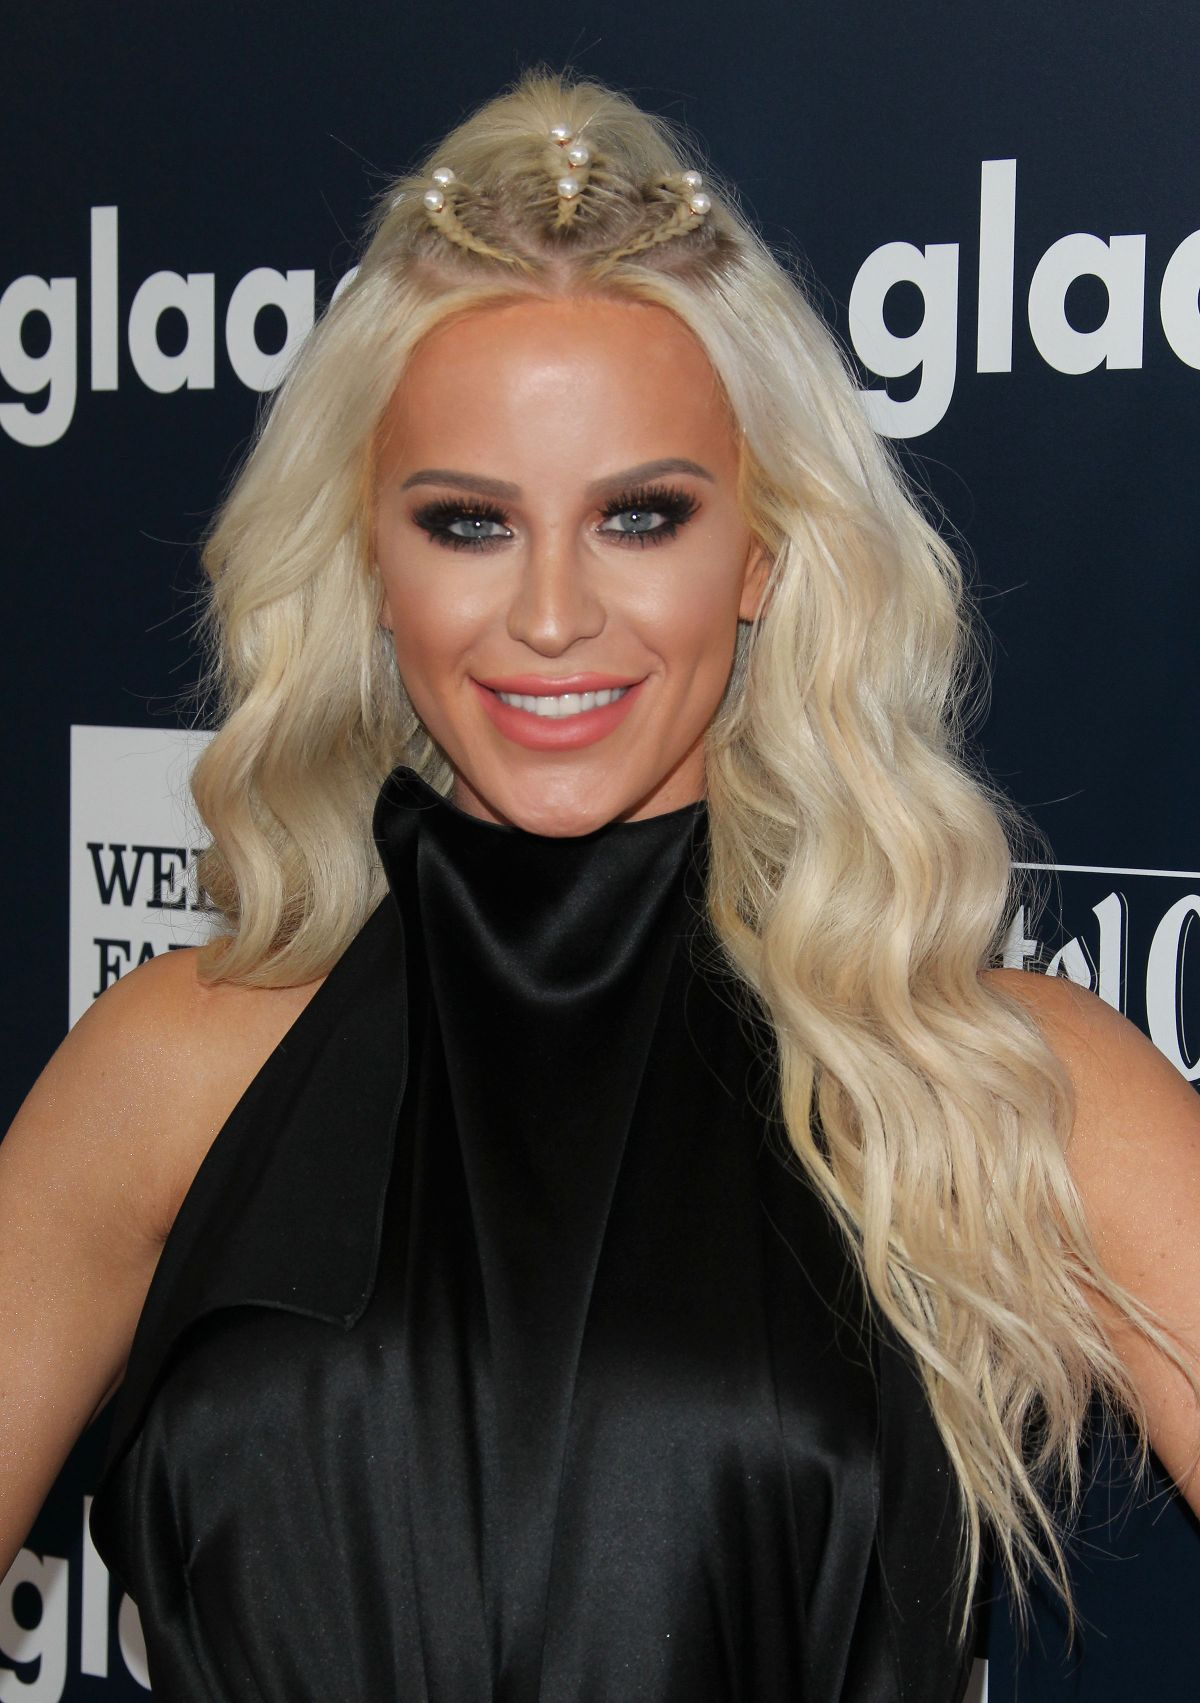 GIGI GORGEOUS at 2017 Glaad Media Awards in Los Angeles 04/01/2017